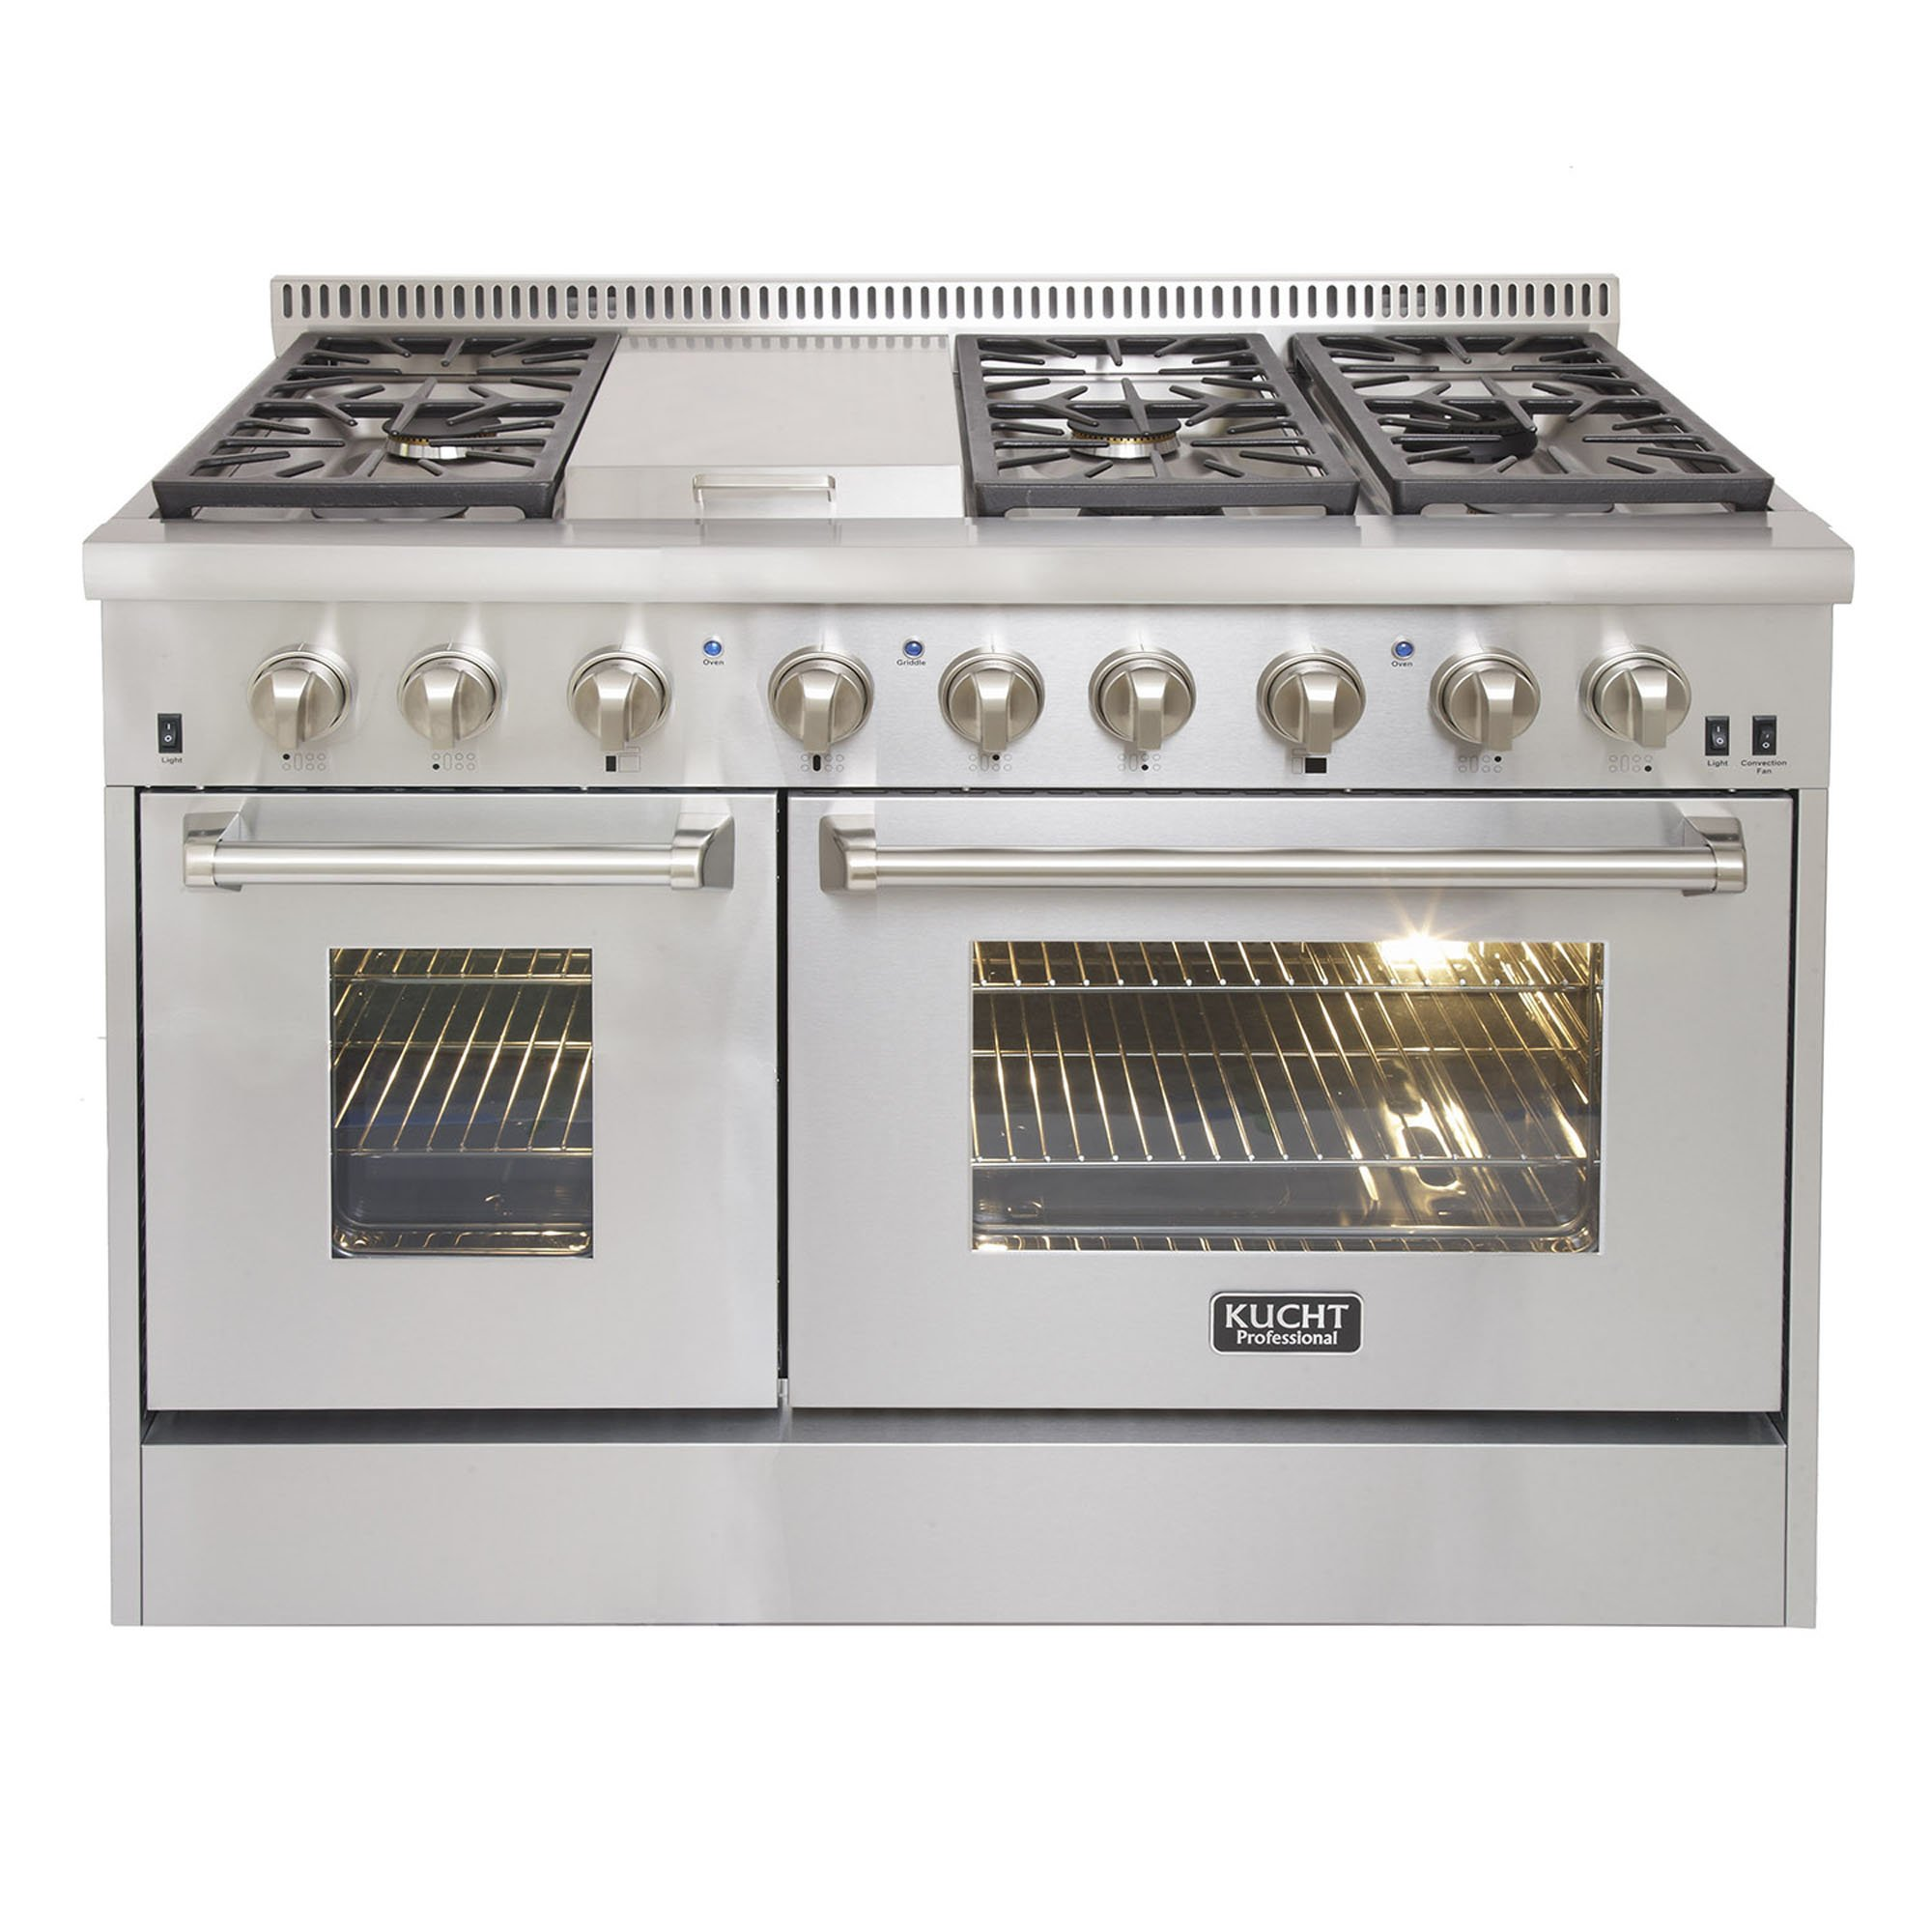 Kucht KRD486F Professional 48'' 6.7 cu. ft. Dual Fuel Range for Natural Gas, Stainless-Steel by Kucht